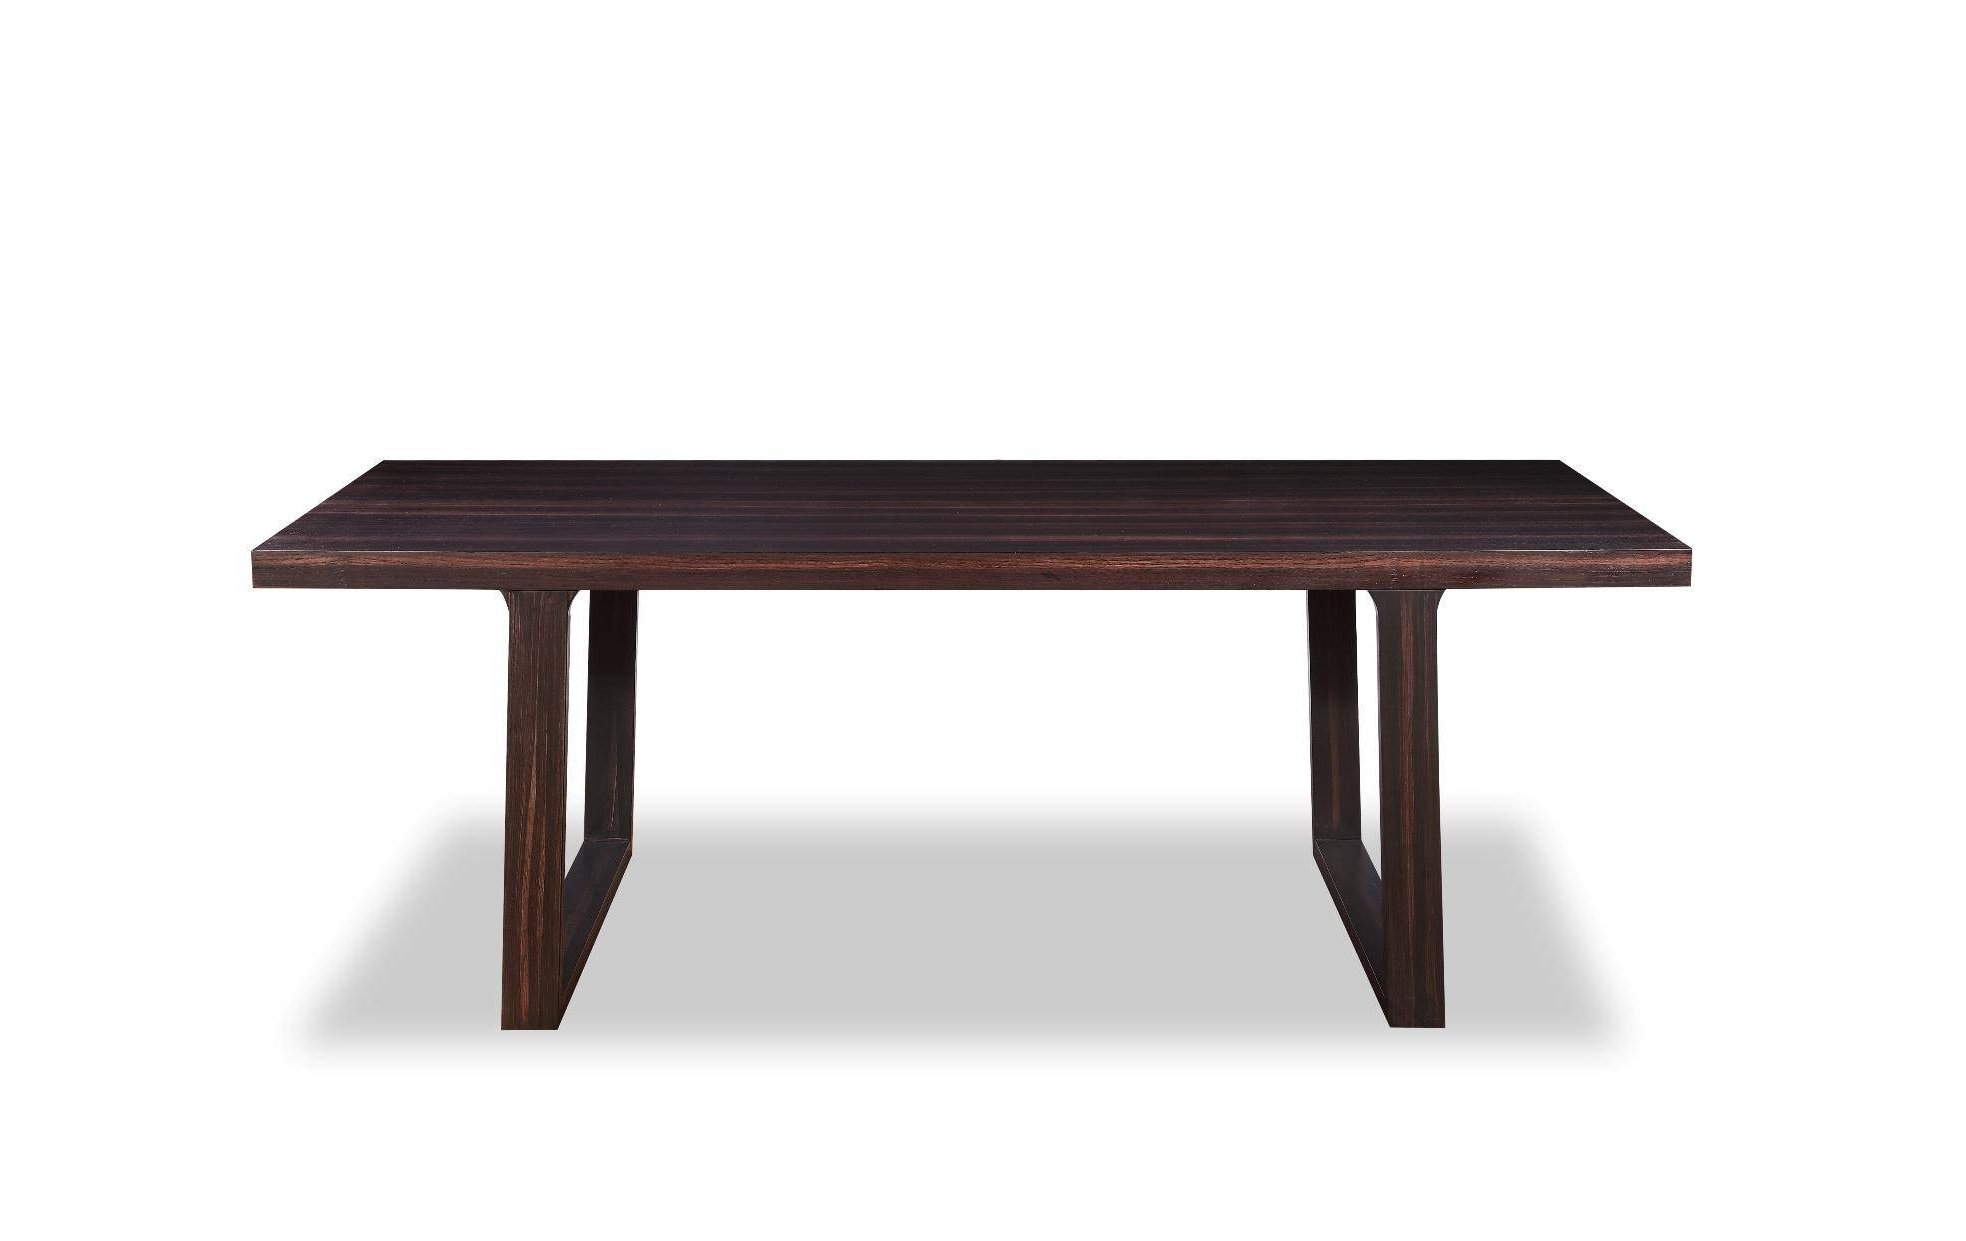 Vig A&x Caligari Oak Veneer Rectangular Dining Table Throughout Most Current Contemporary Rectangular Dining Tables (View 19 of 25)